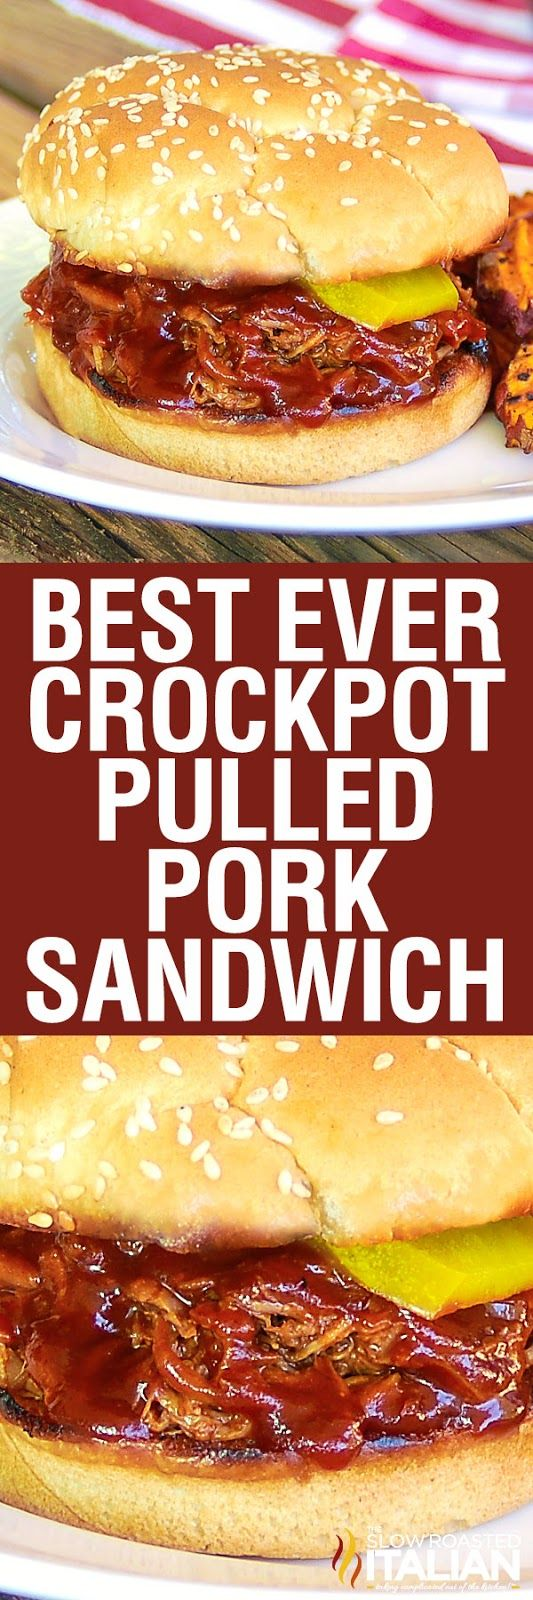 The Best Ever Simple Crockpot Pulled Pork Sandwiches are incredibly moist, tender and delicious.  A simple recipe, loaded with flavor from a homemade barbecue sauce and Dr. Pepper.  Dr. Pepper?  Yep.  You would never believe all the flavor that DP imparts into this pork.